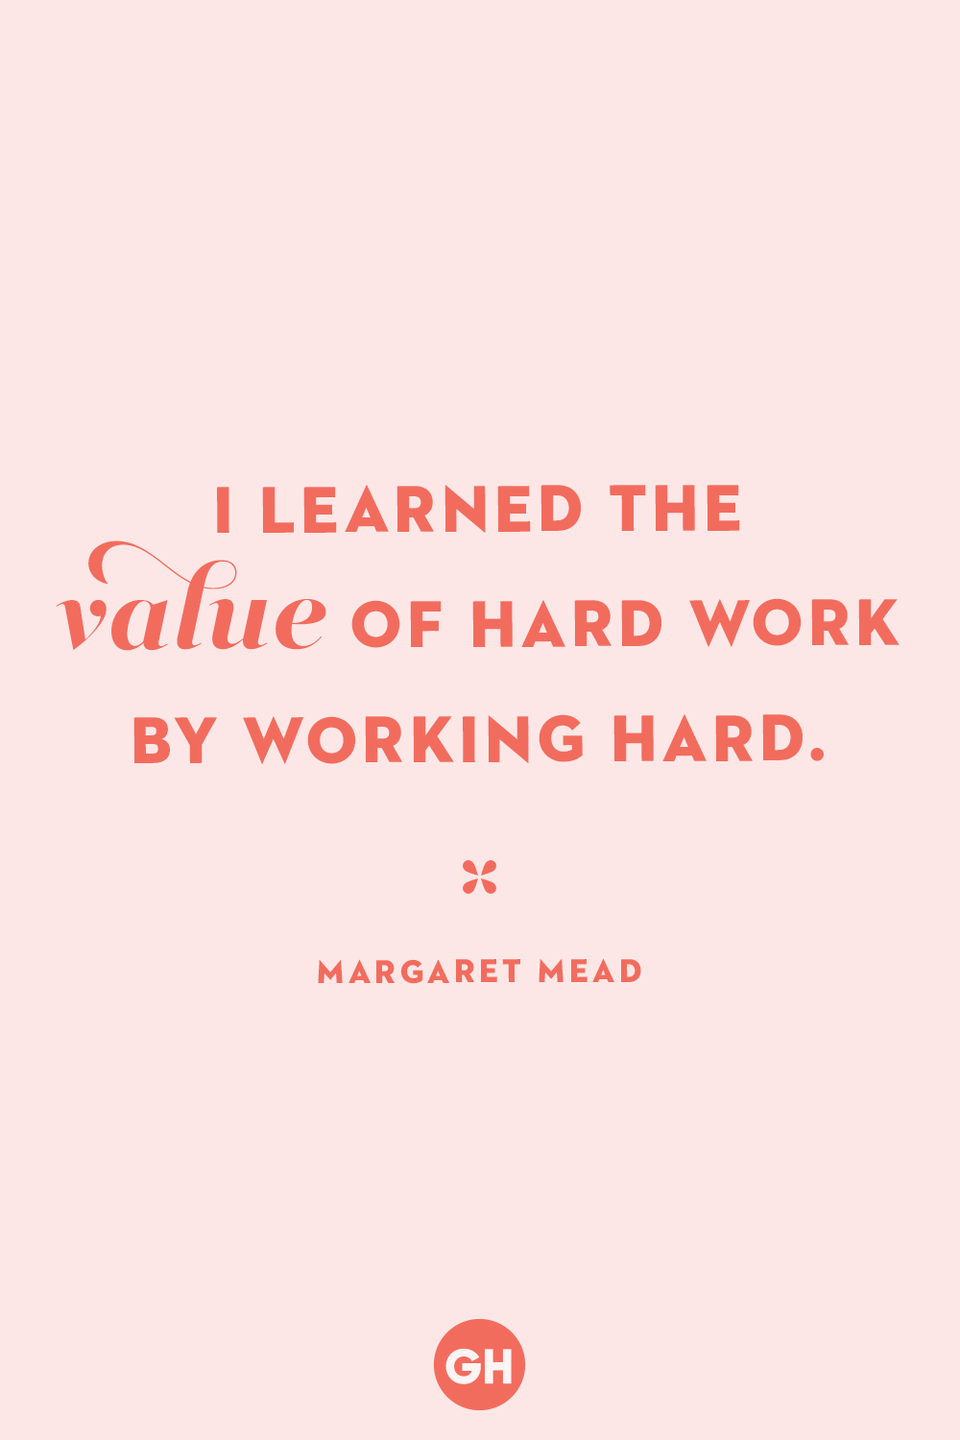 <p>I learned the value of hard work by working hard.</p>